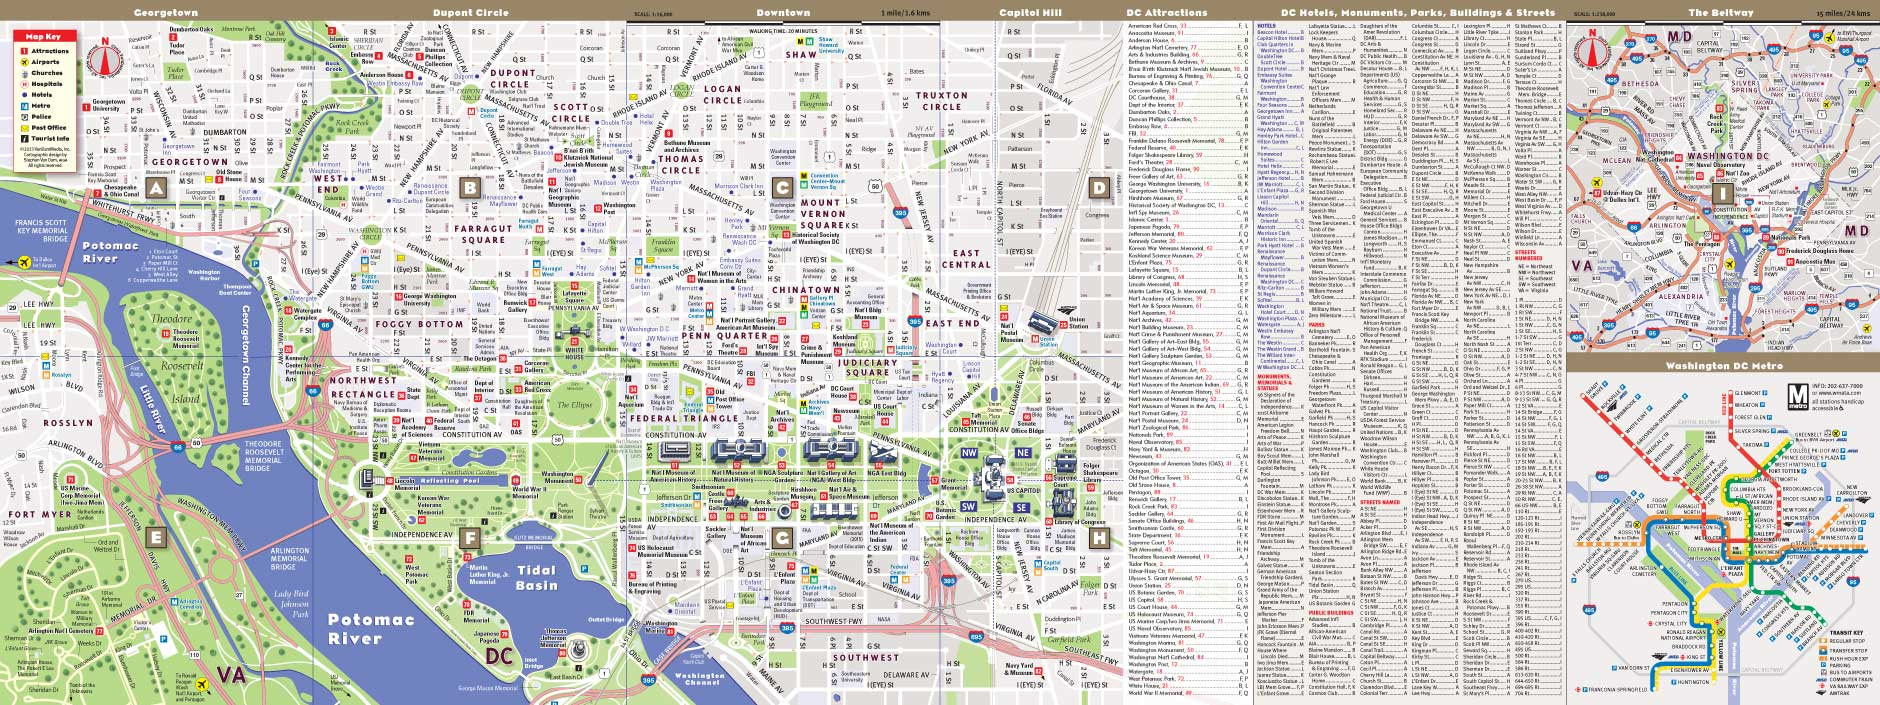 photo about Printable Map of Washington Dc Mall known as VanDam Washington DC MallSmart Map